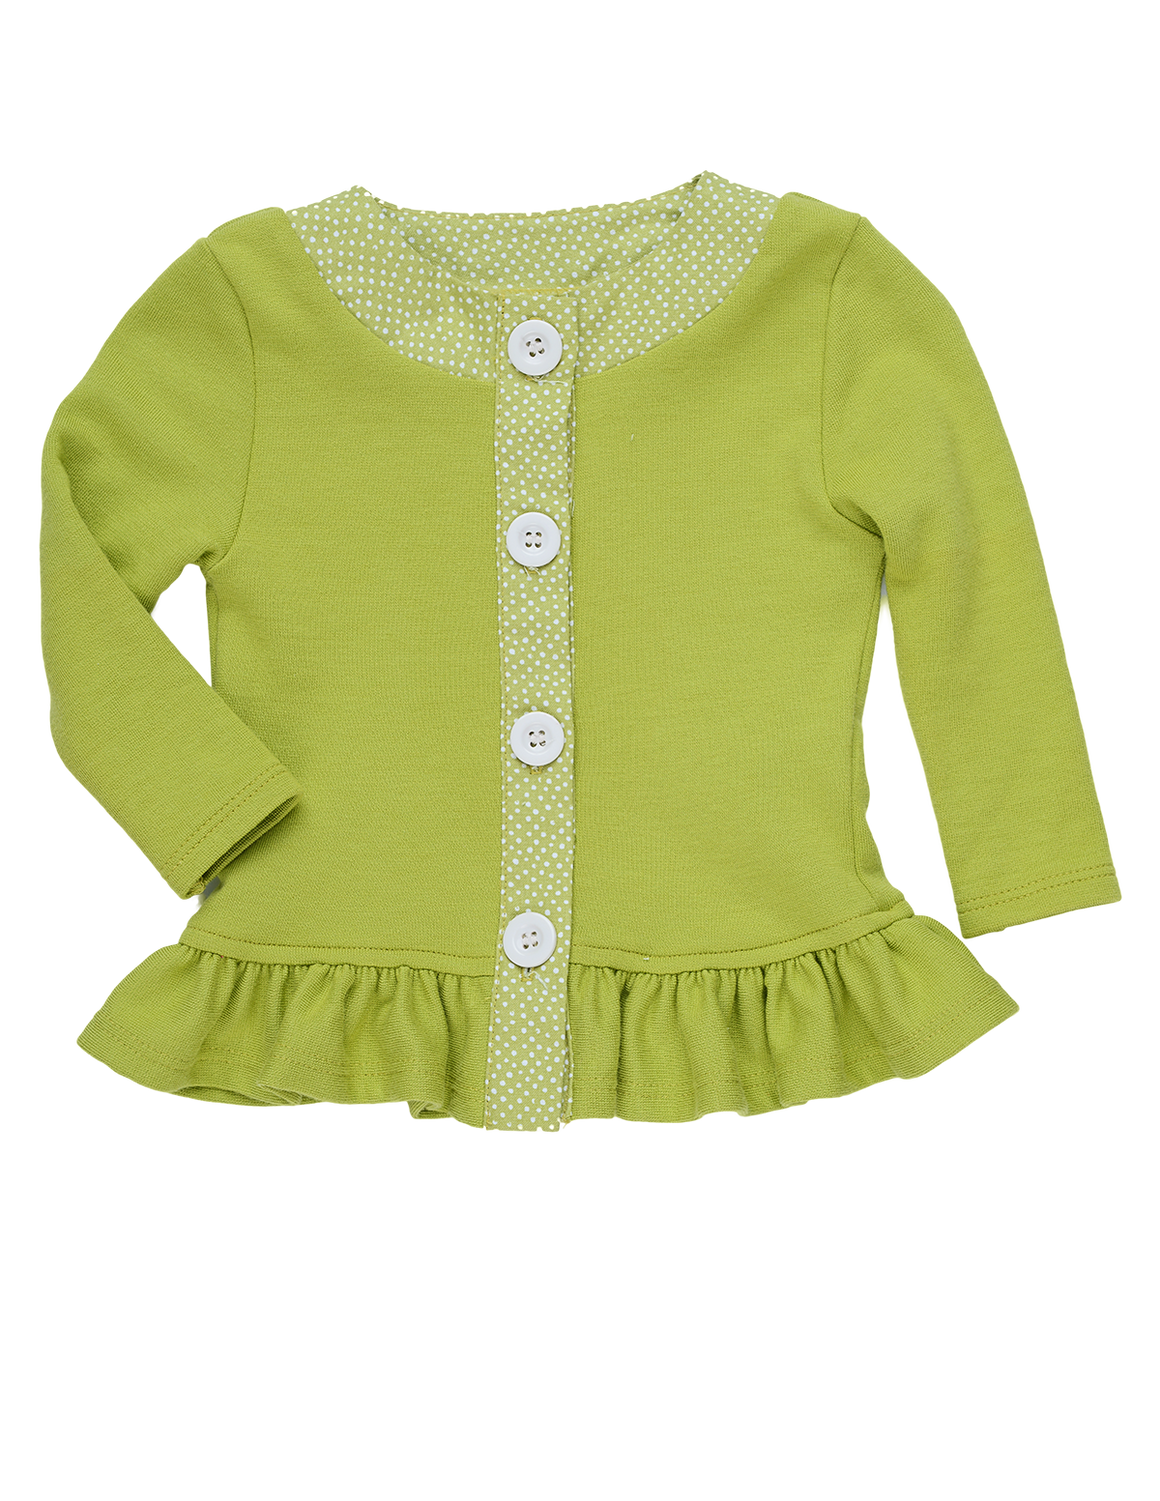 Jane Sweater baby (GRN) - Sample - 6-12M